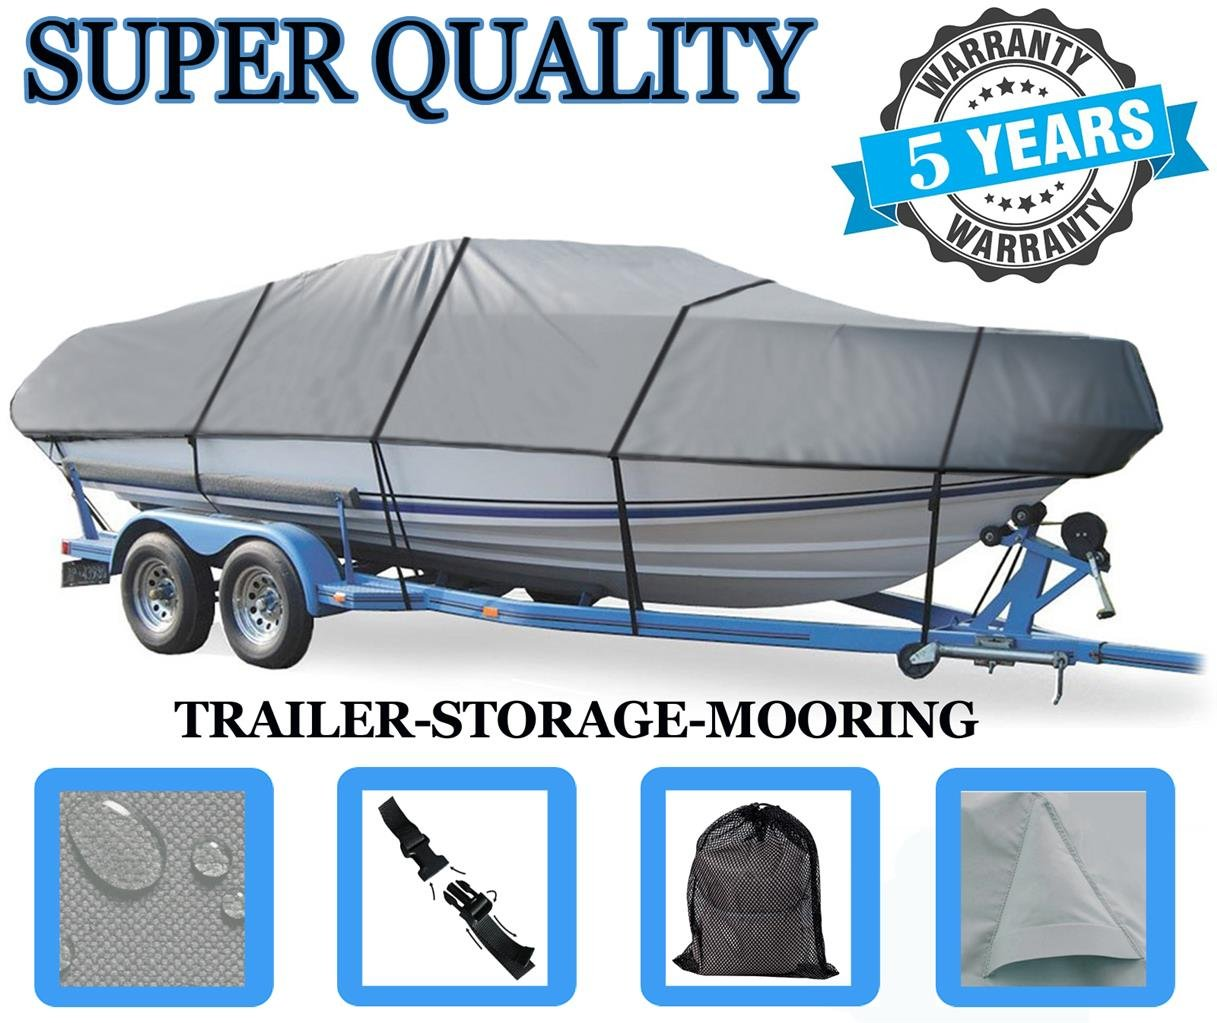 GREAT QUALITY BOAT COVER FITS TRACKER PRO TEAM 175 TXW/175 TF 2007-2011 by SBU